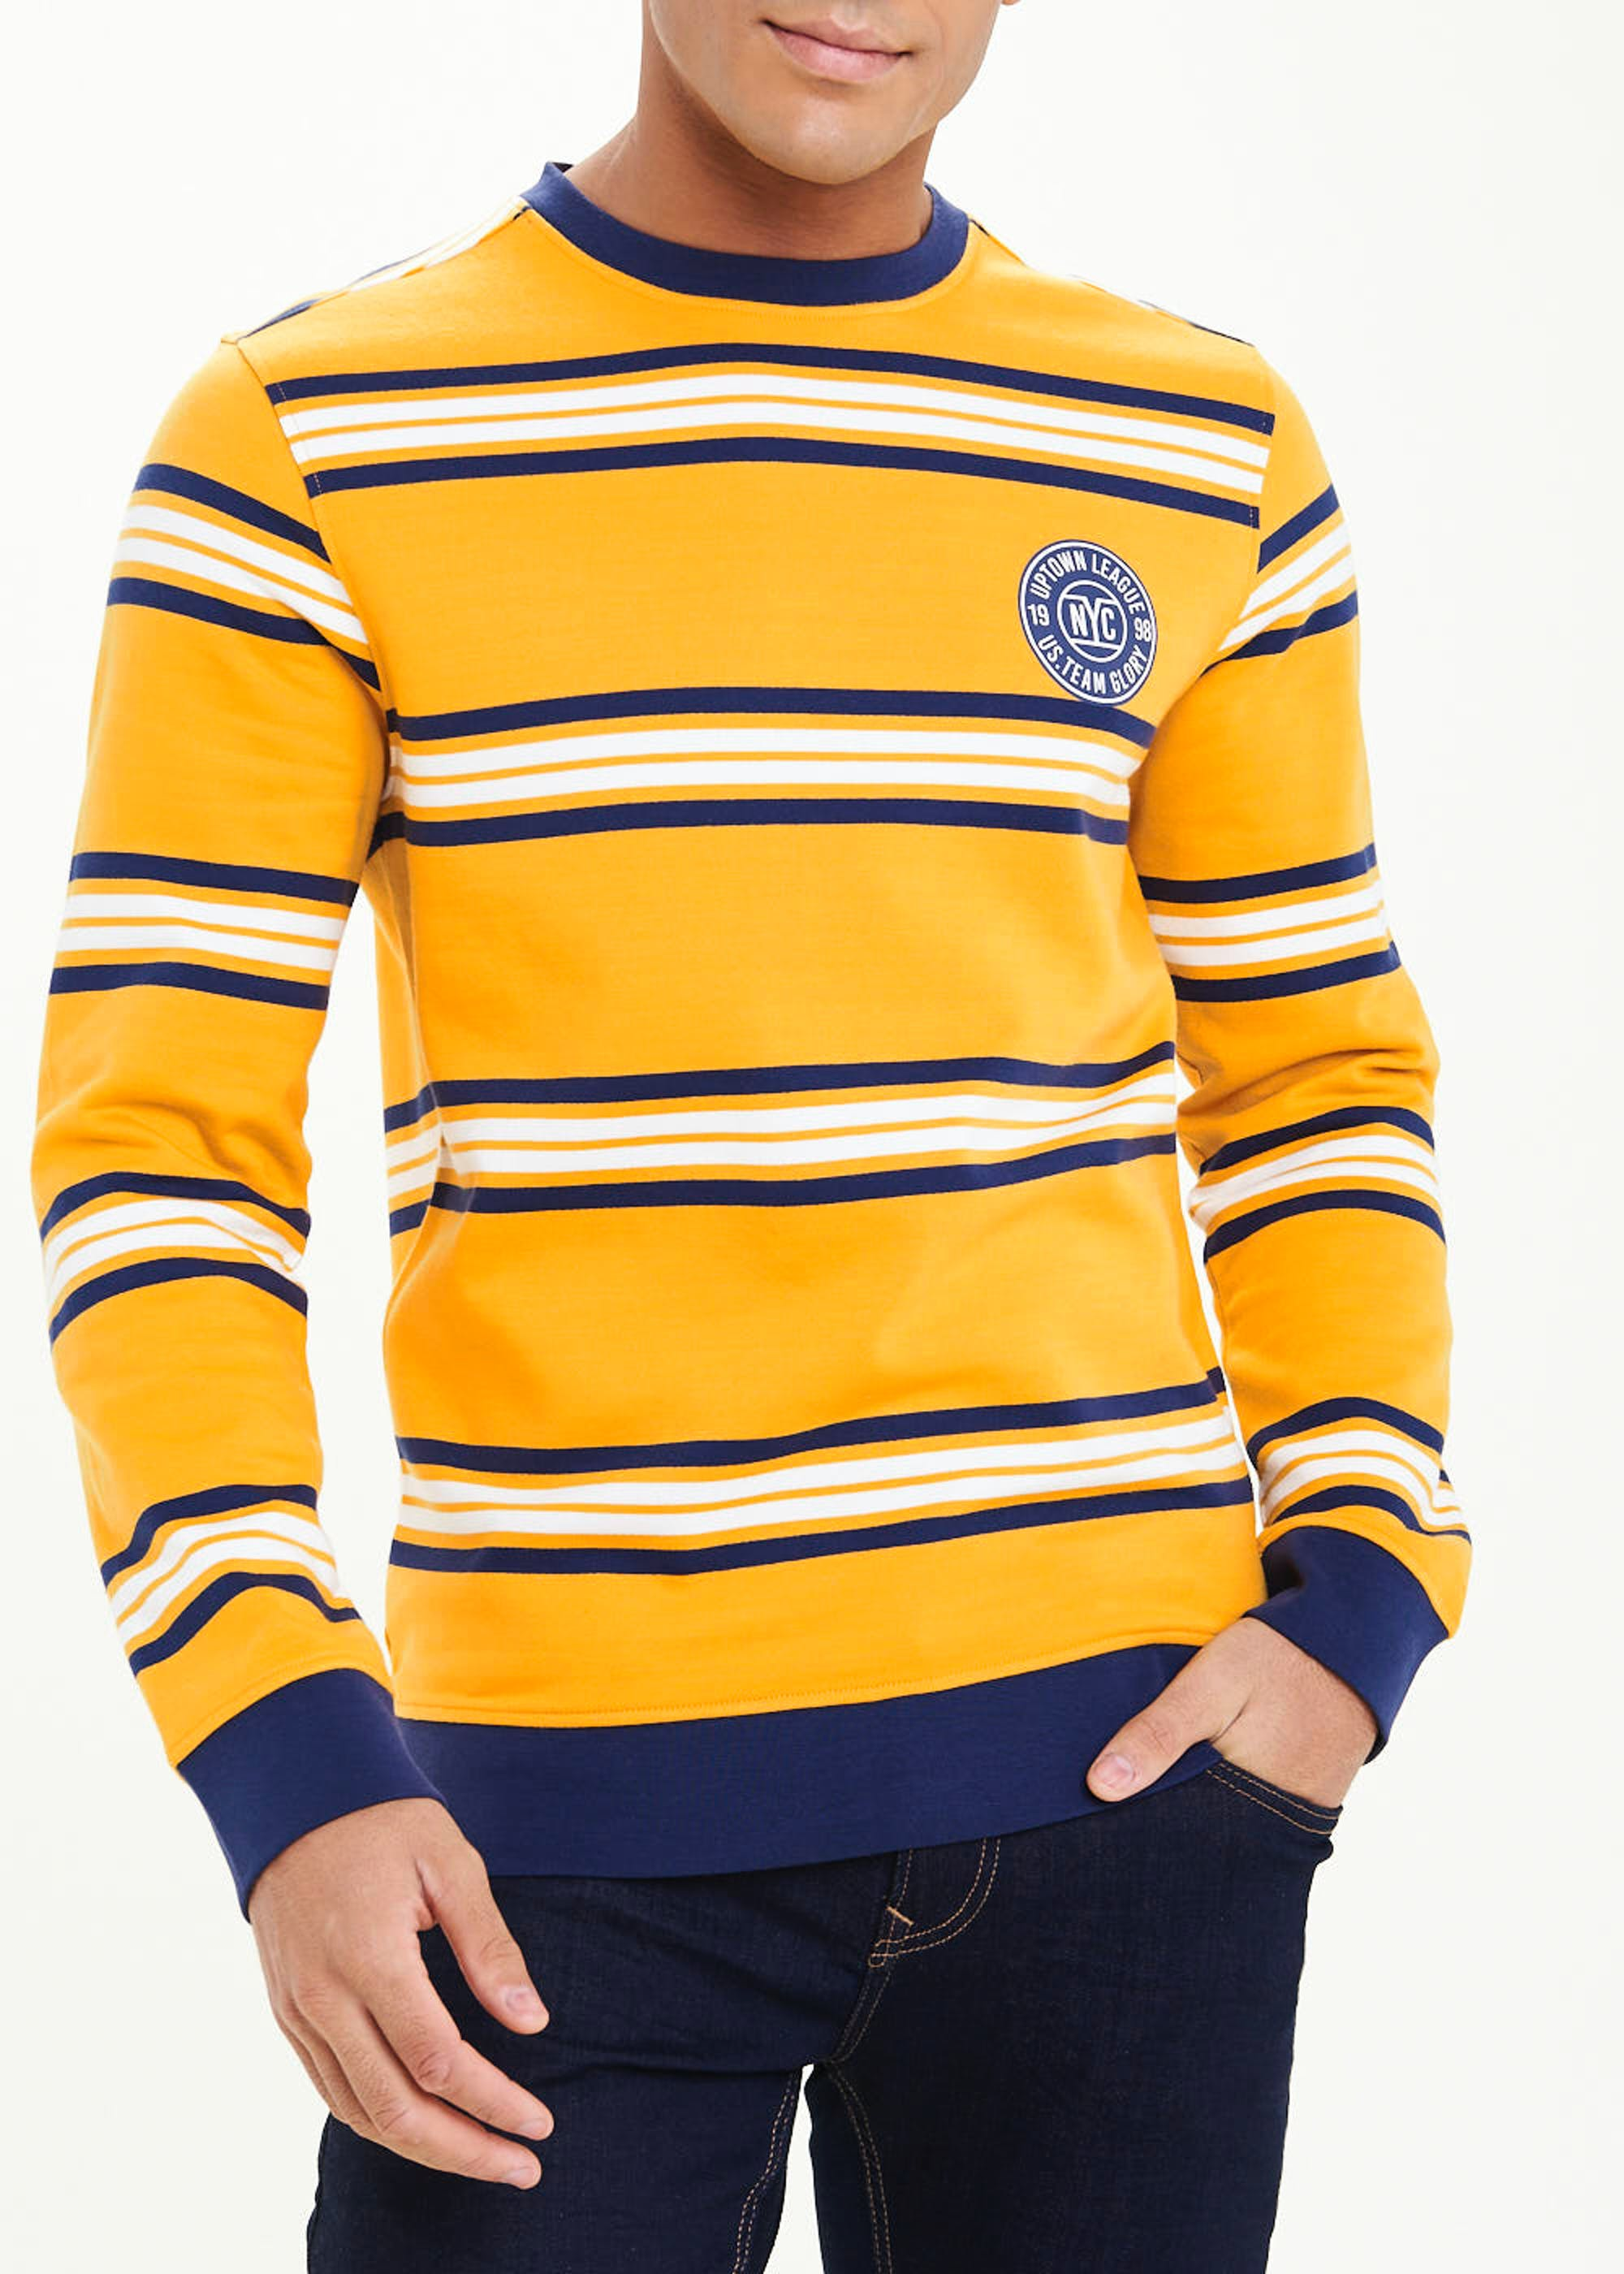 Striped Sweatshirt Yellow lmTvUP